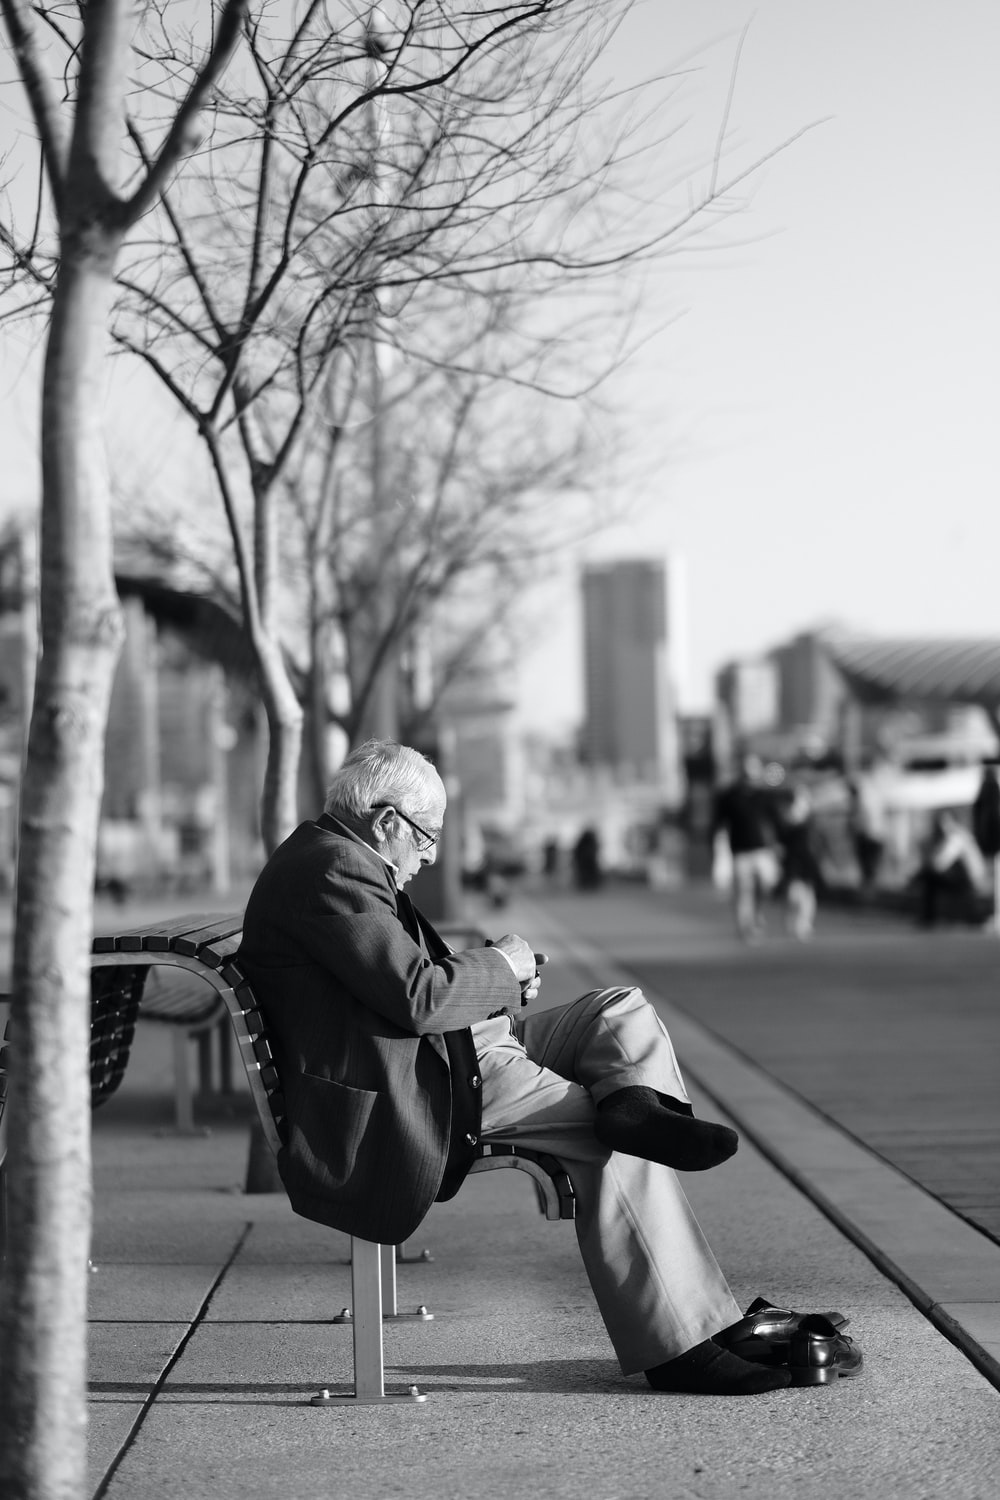 grayscale photo of man sitting on bench near bare trees